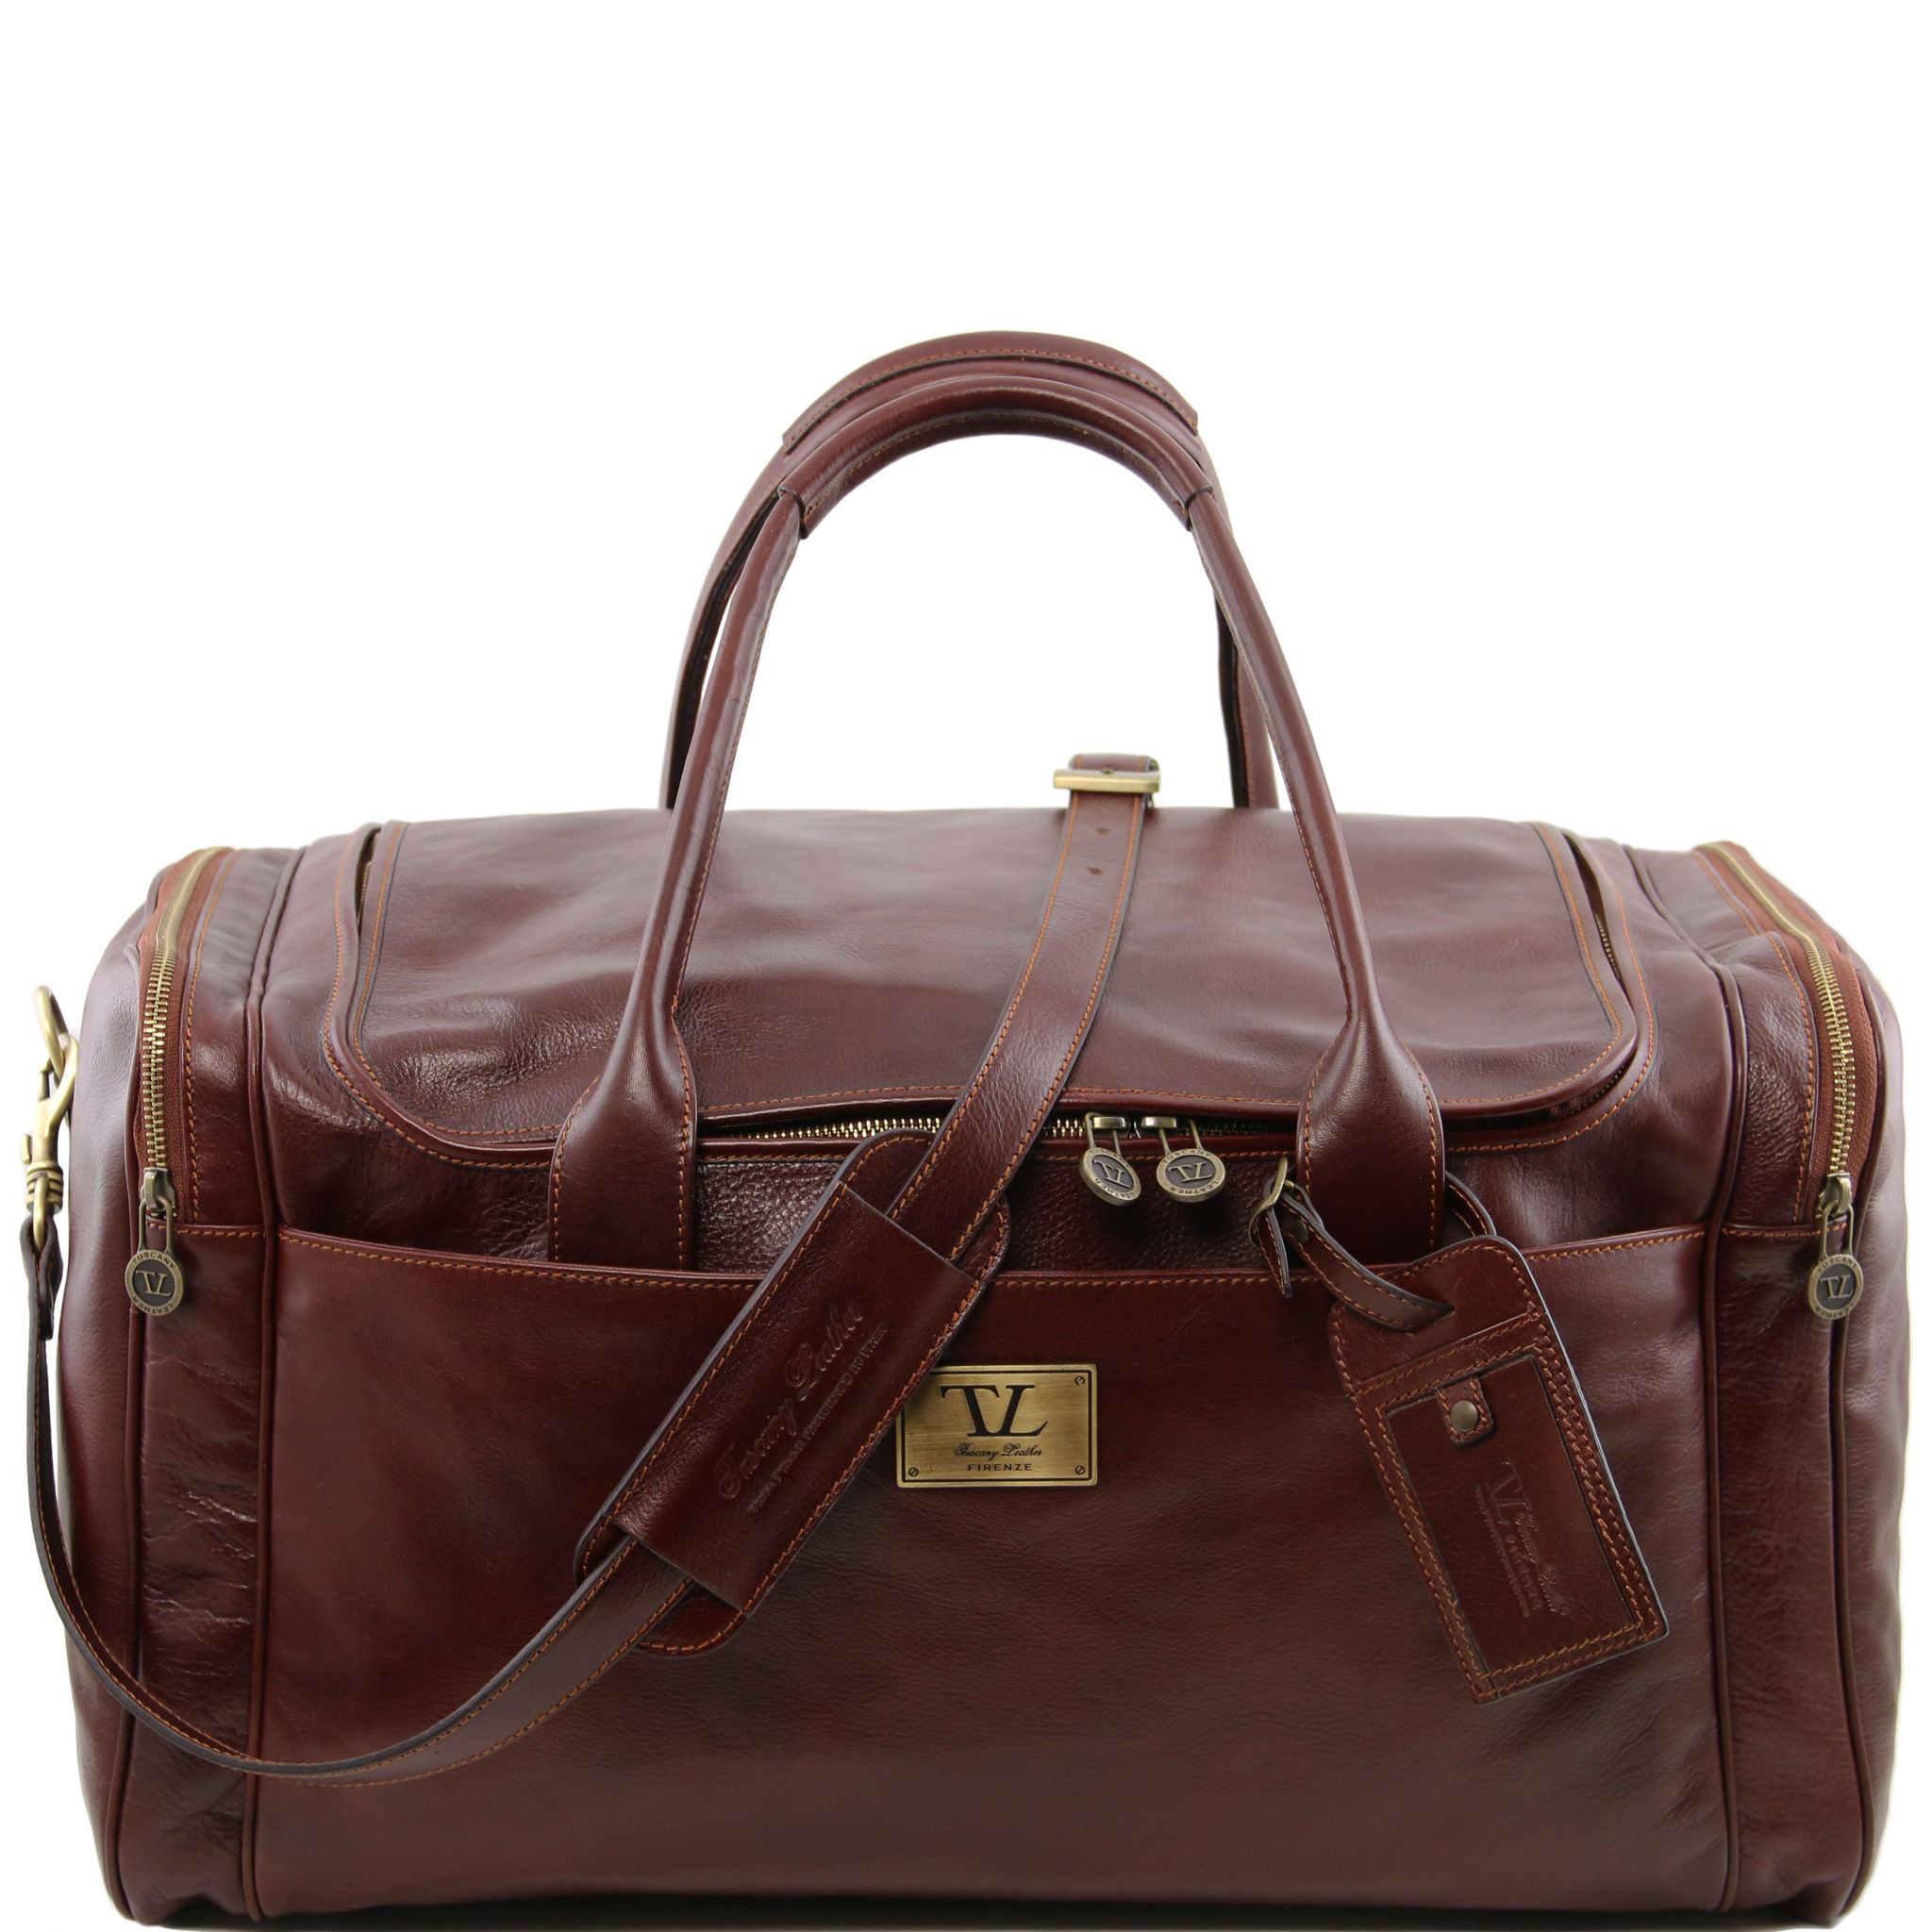 Tuscany Leather TL VOYAGER - TL141281 - Brown